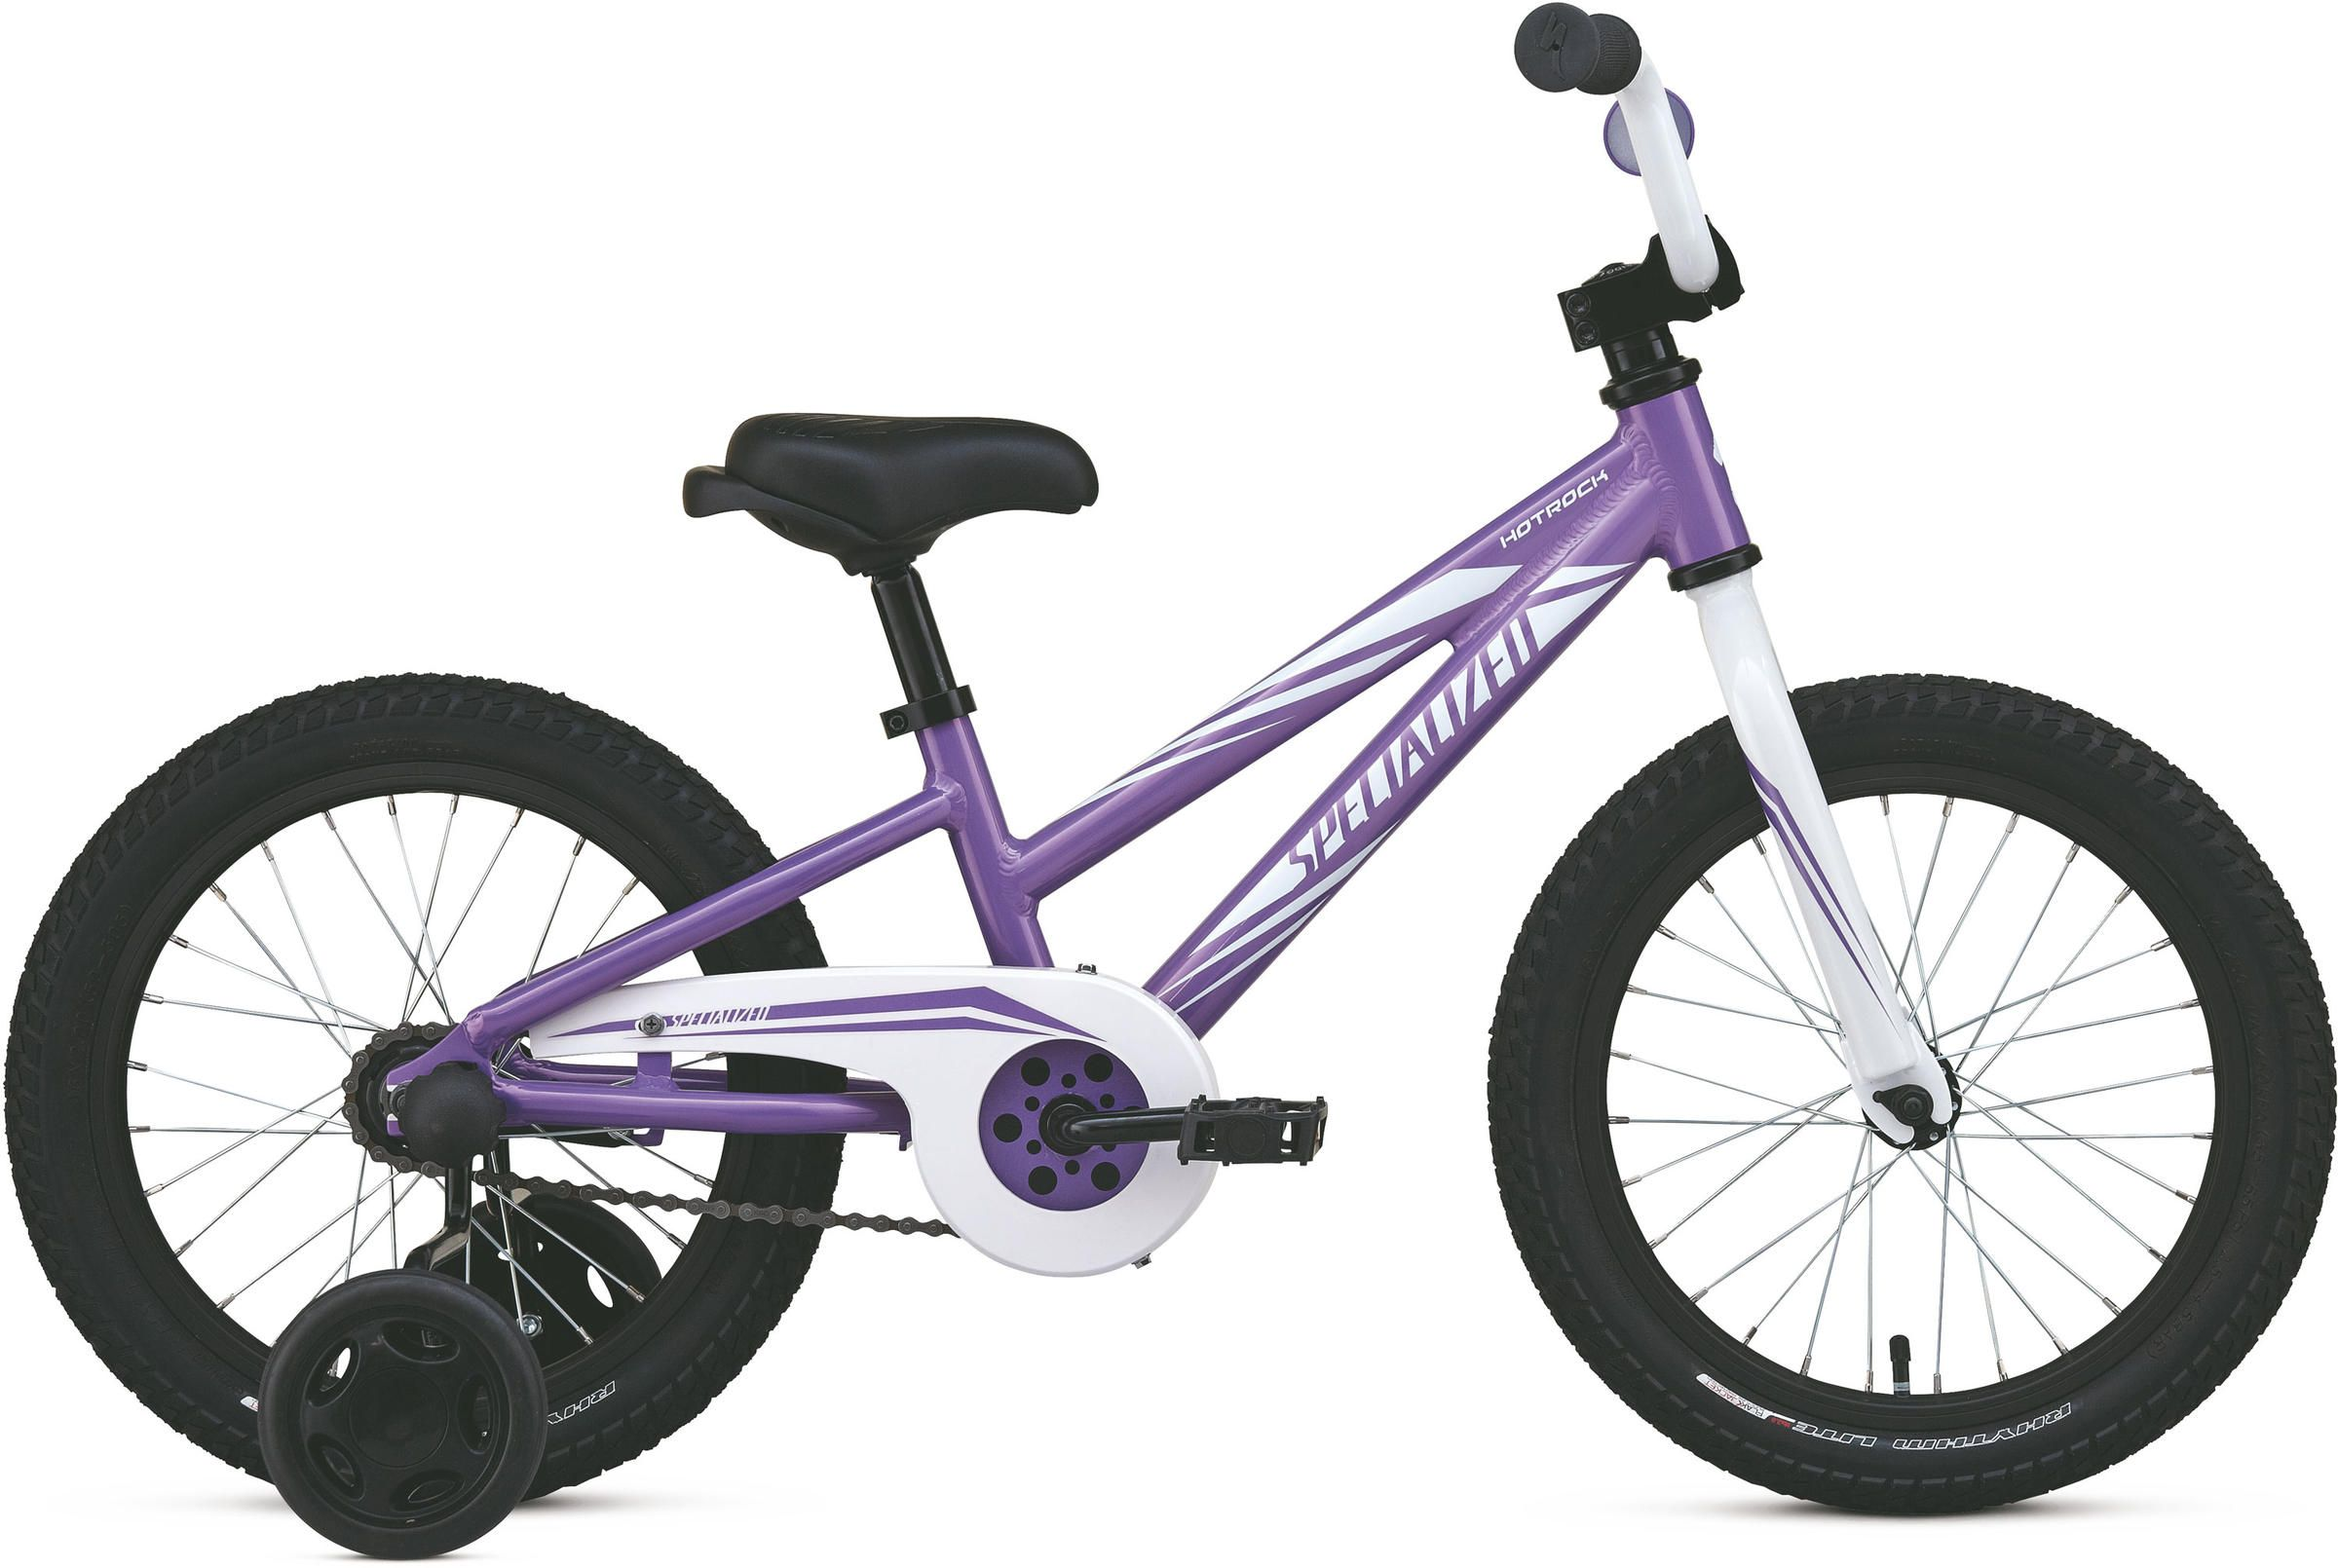 a33362aee65 Specialized Girl's Hotrock 16 Coaster - BikeSource - Sales, Repair,  Electric Bicycles, Fit, Trade